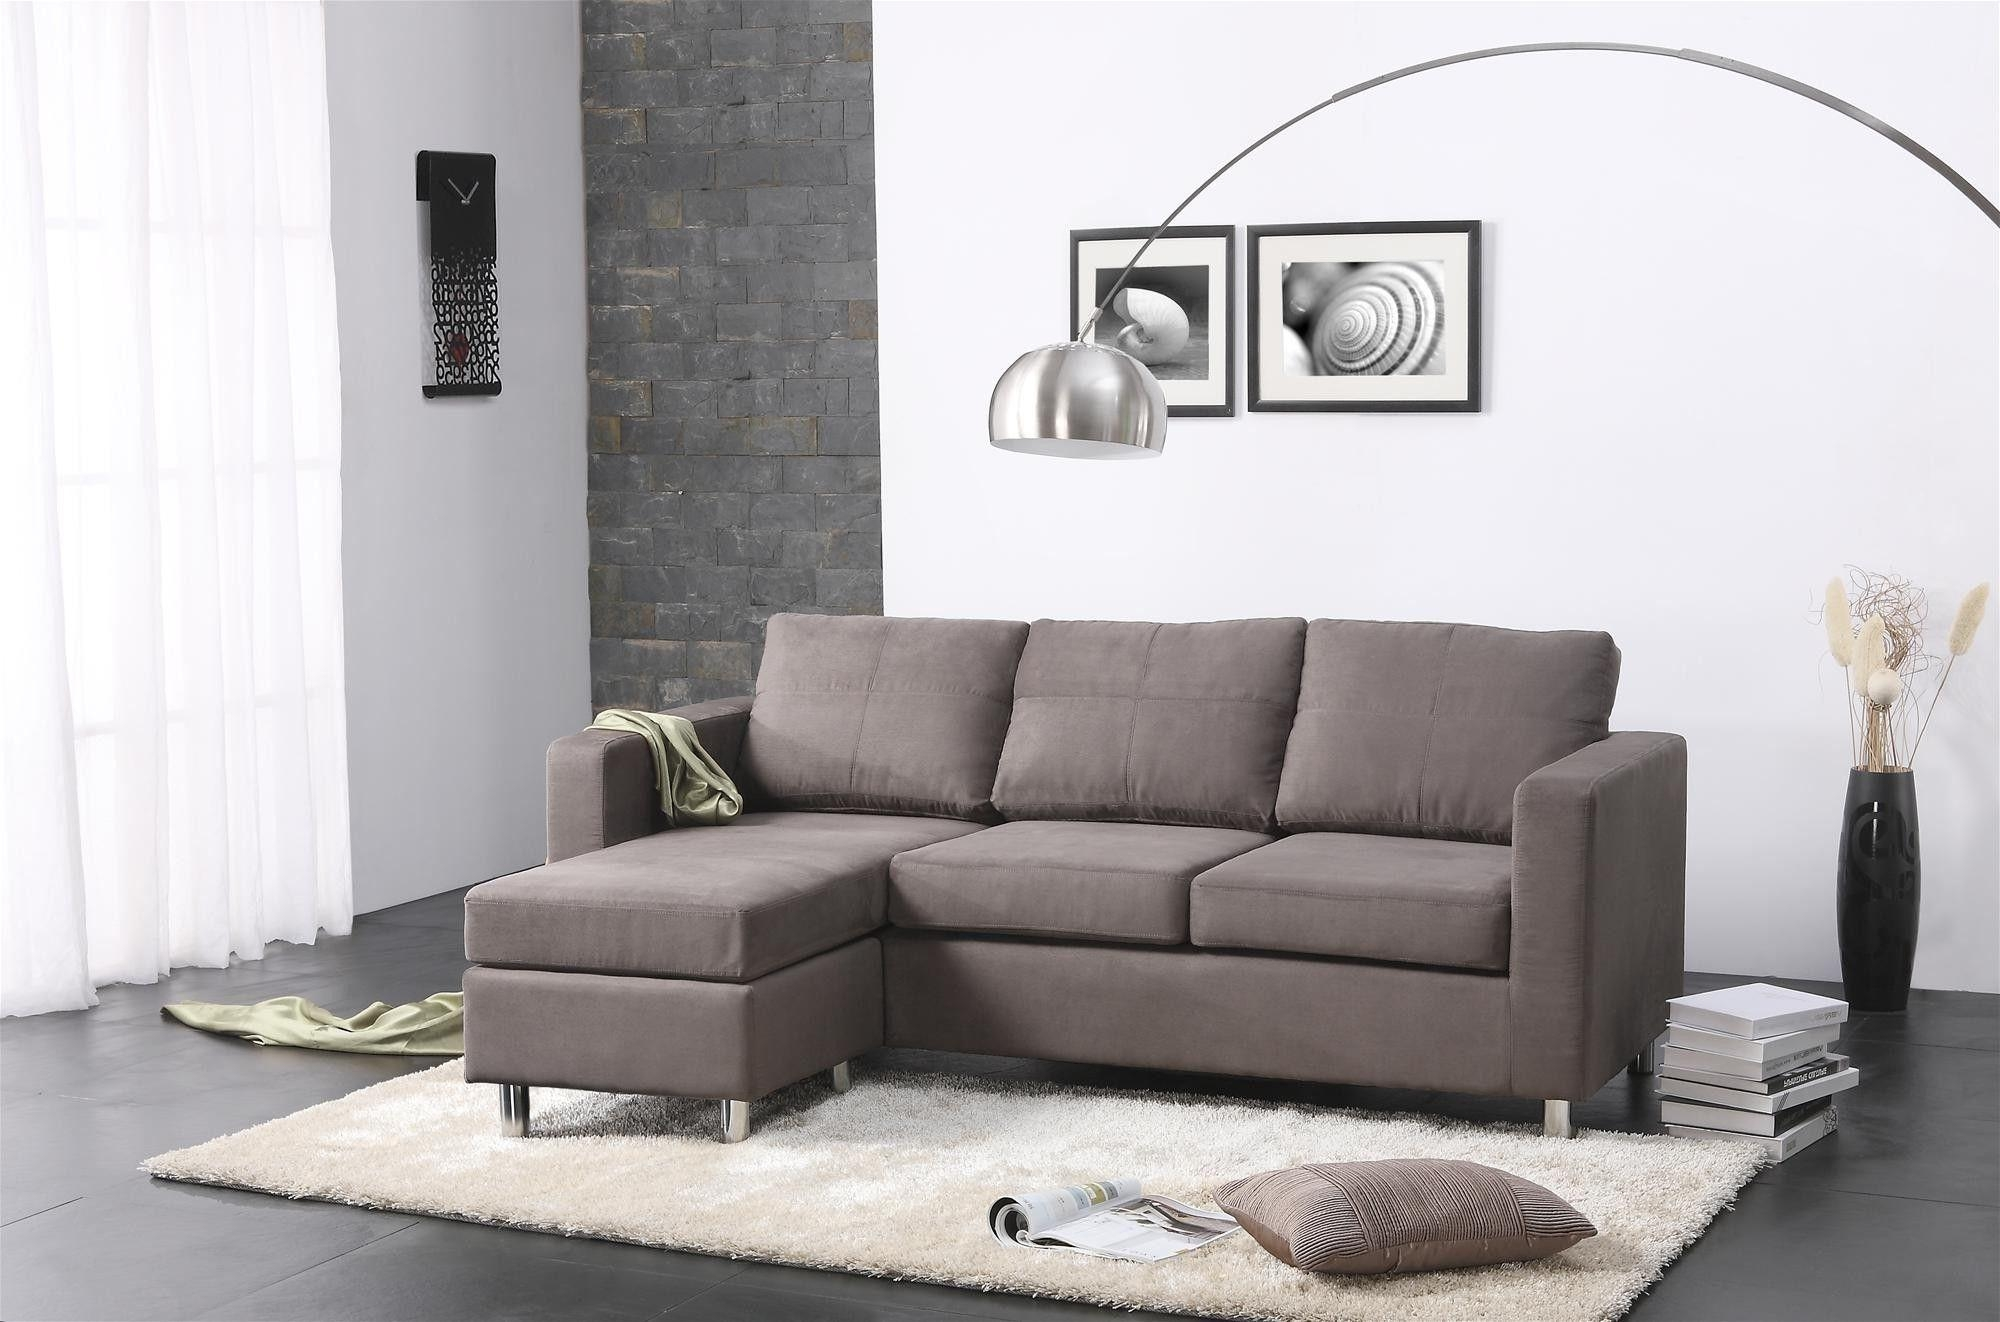 Furniture: Leather Sectional Sofas Cheap Plus Rug And Black Floor With Floor Lamp For Sectional Couch (View 7 of 15)